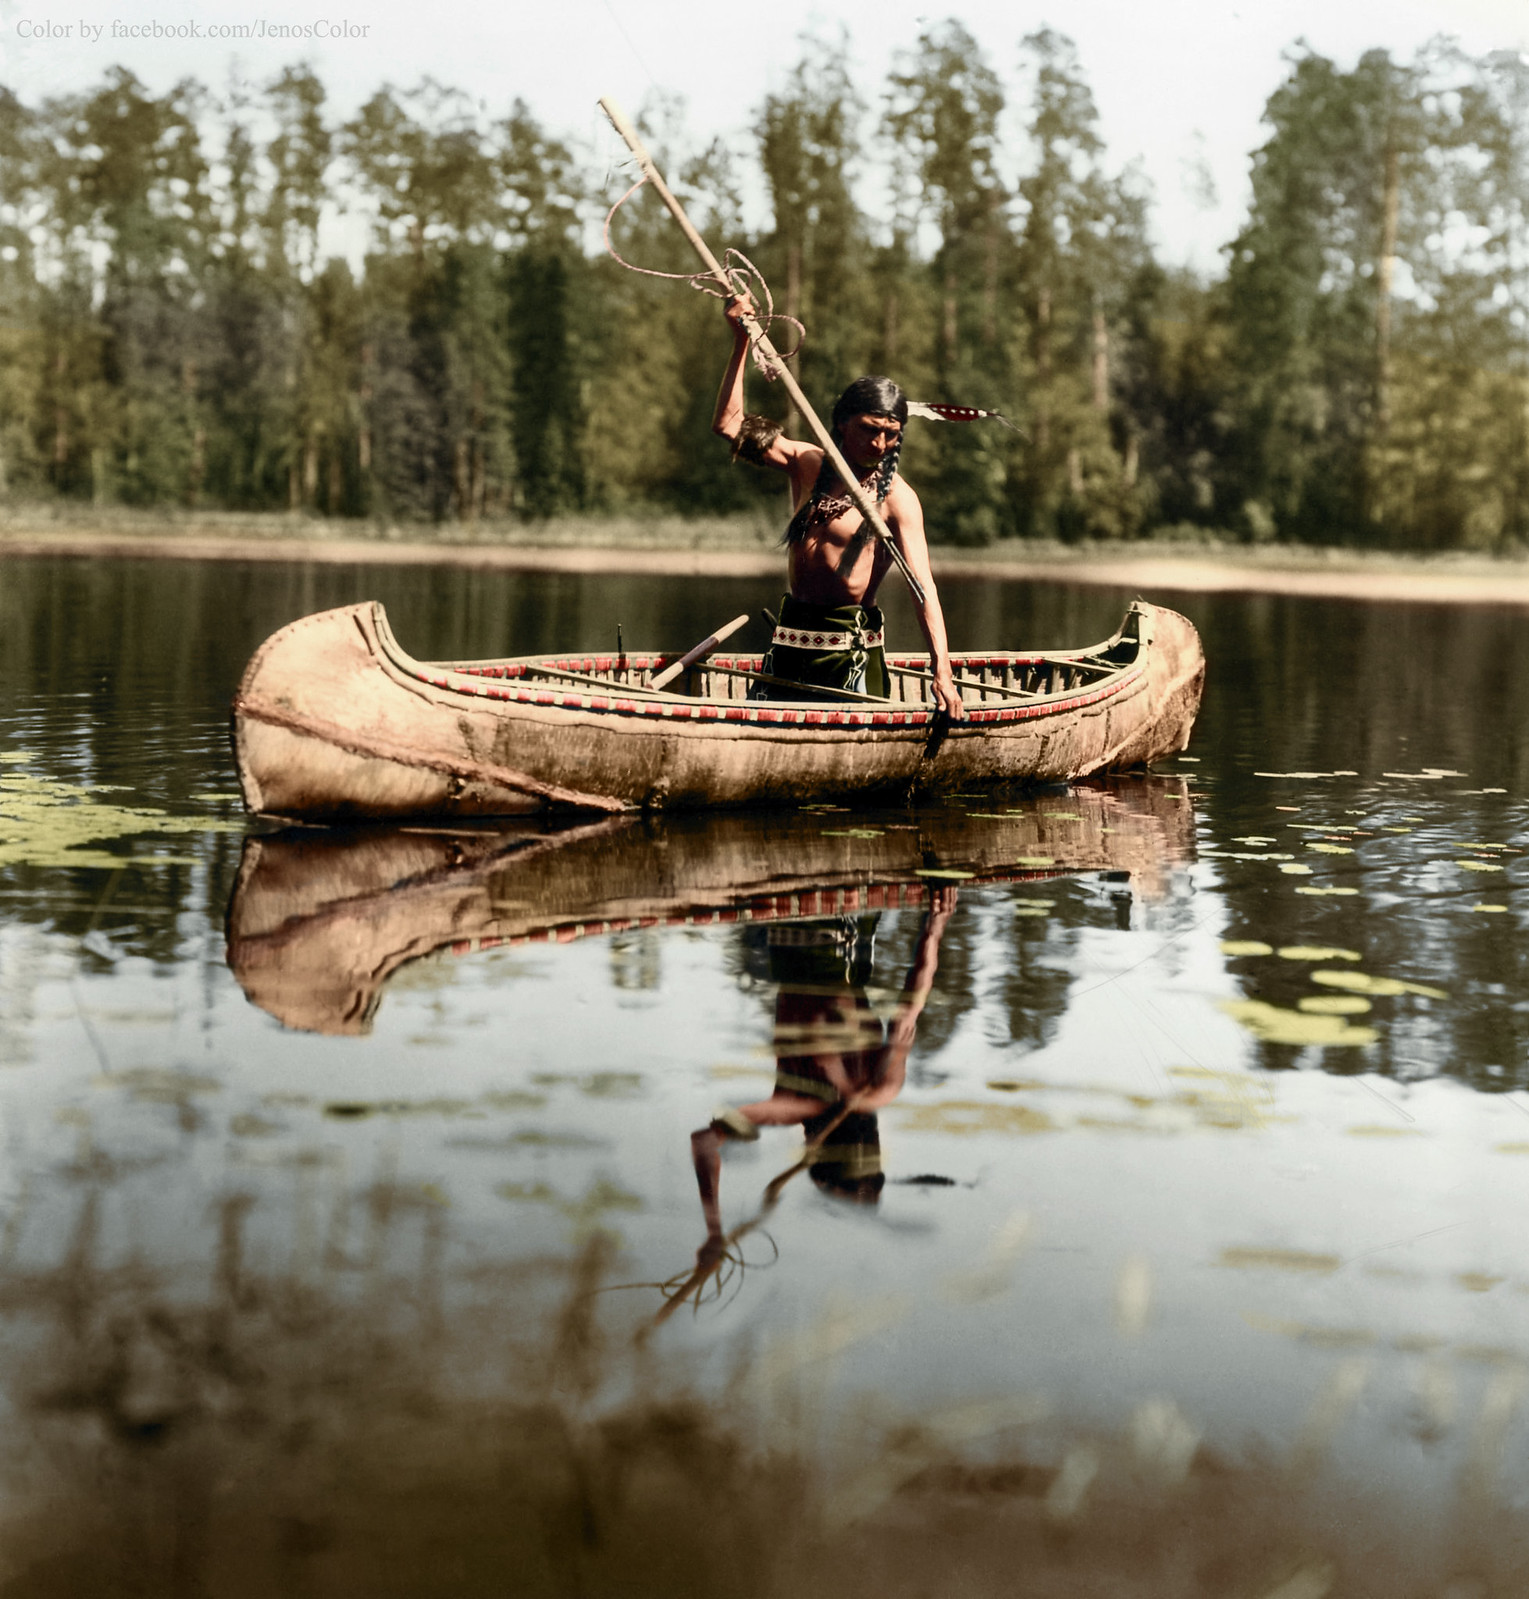 An Ojibwe Native American spearfishing, Minnesota, 1908 ...